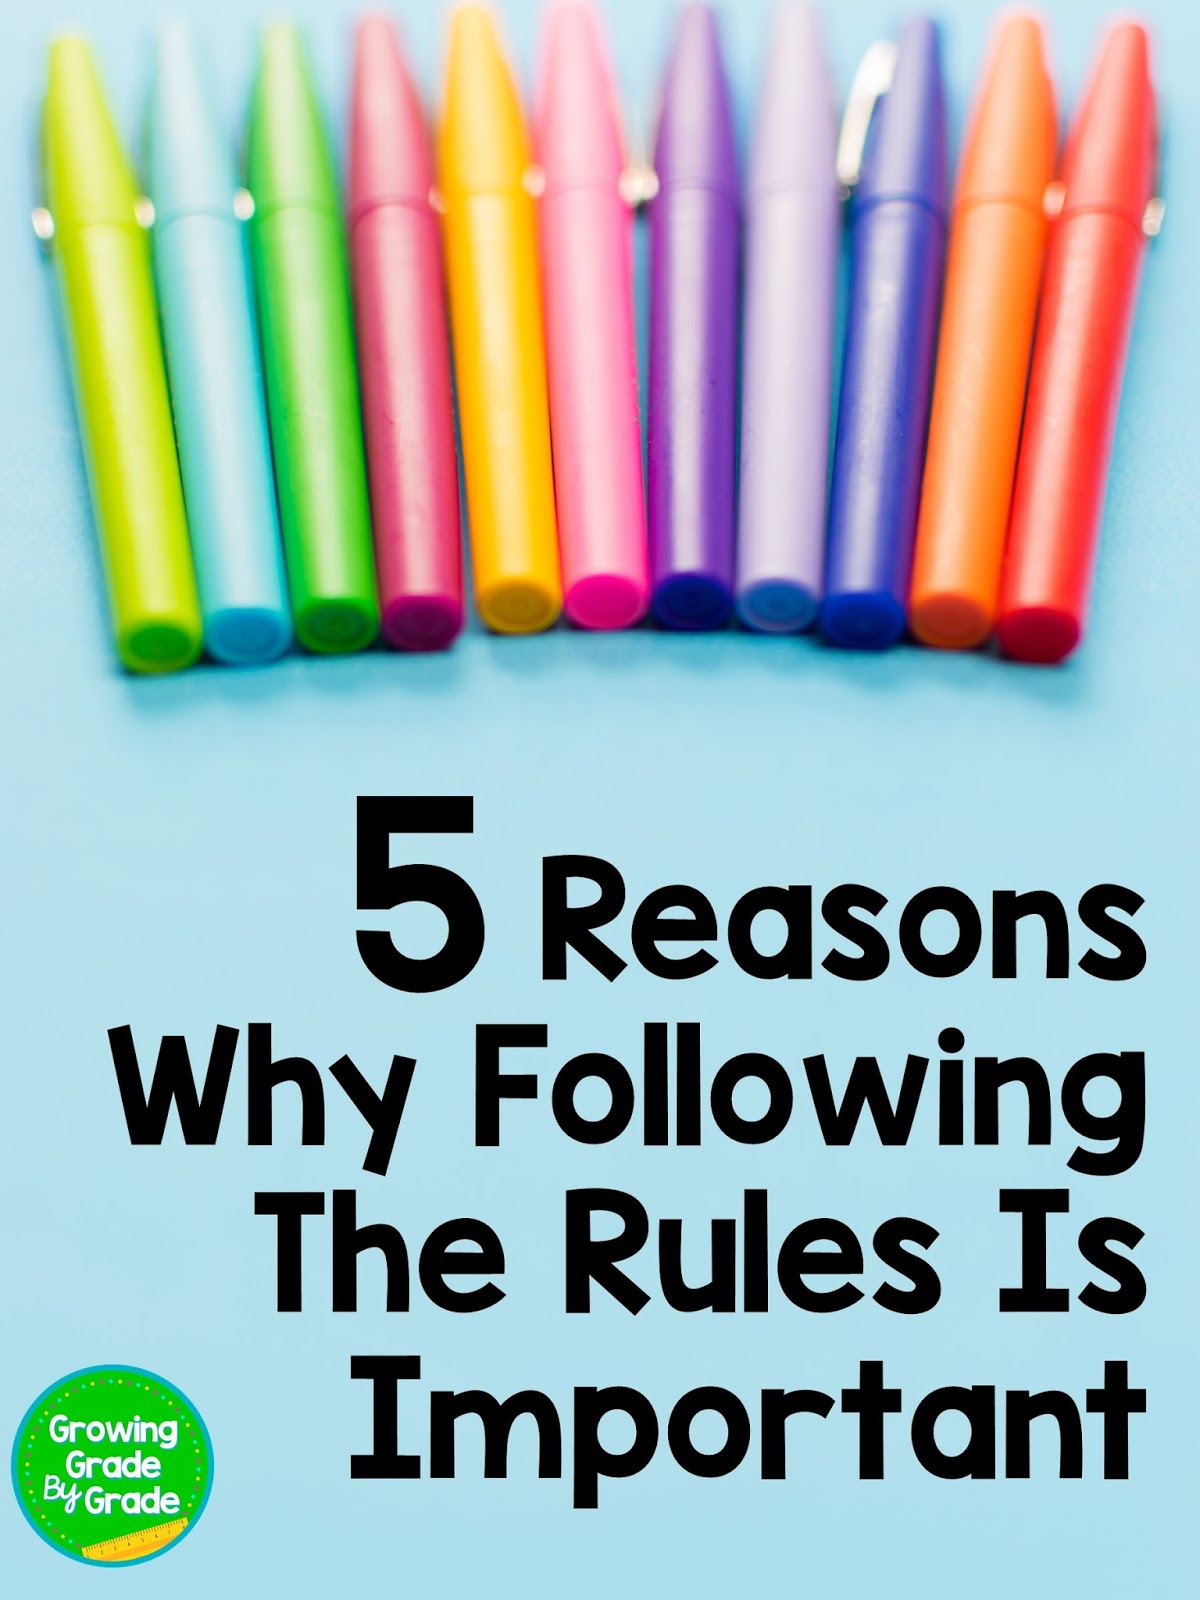 Growing Grade By Grade 5 Reasons Why Following The Rules